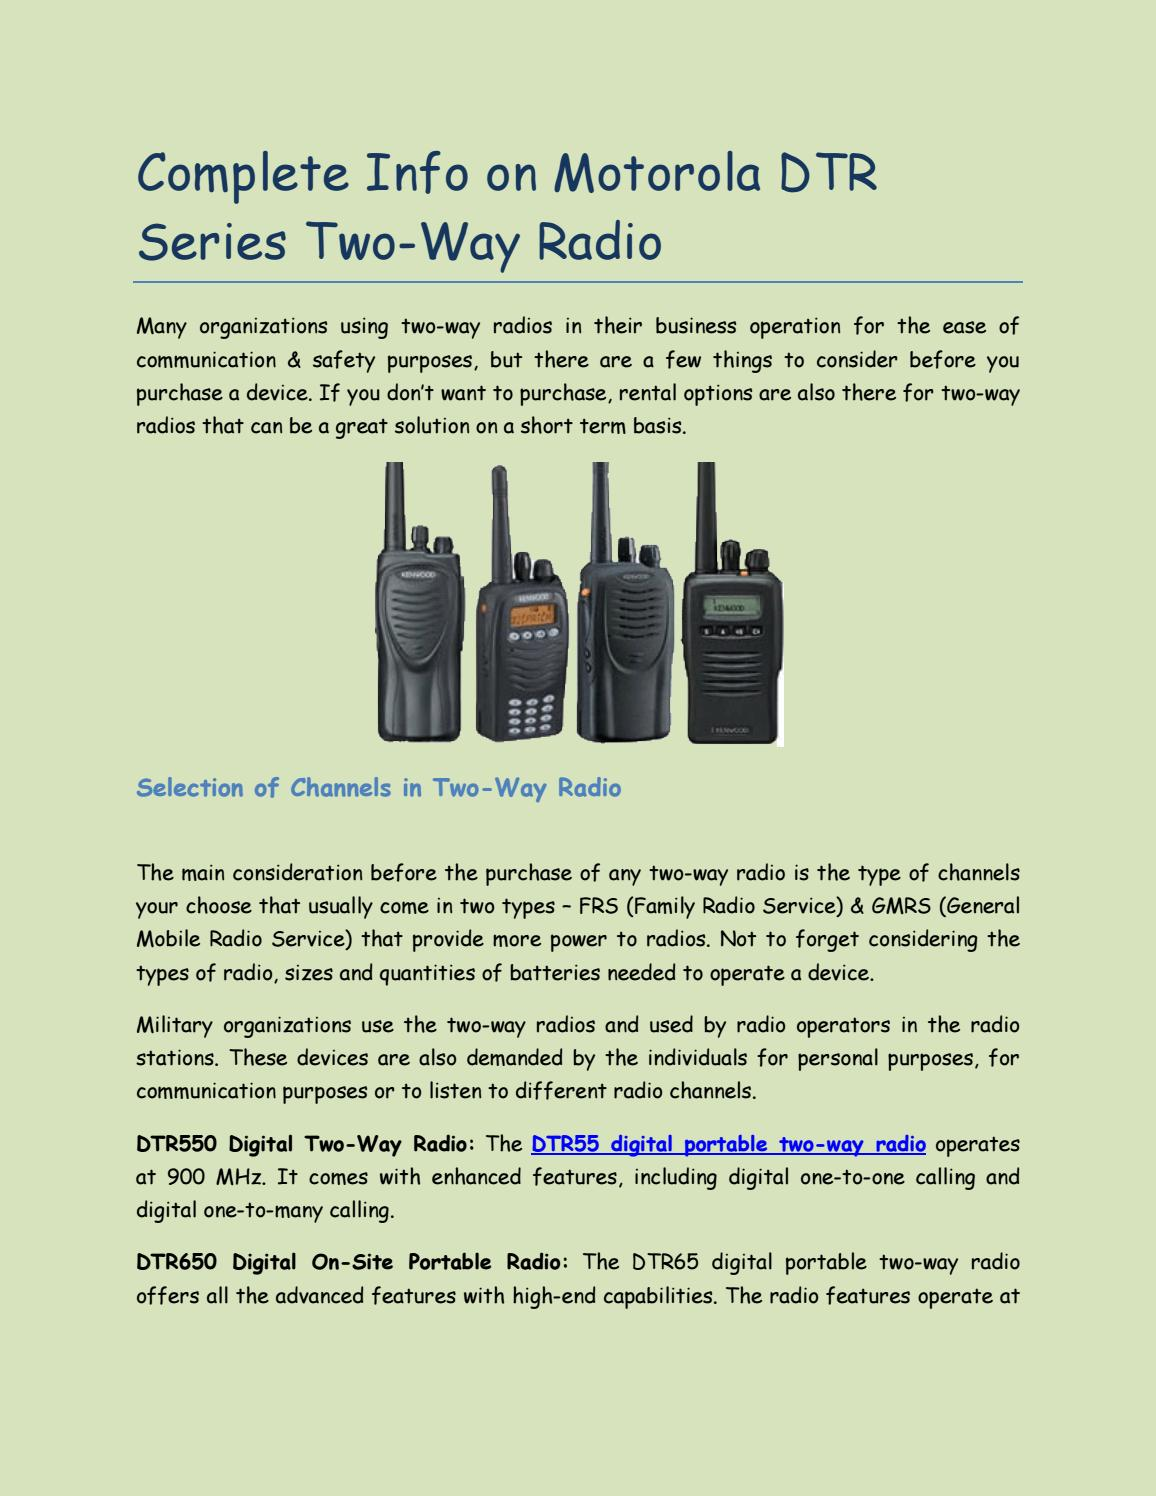 Complete Info on Motorola DTR Series Two-Way Radio by Steven Smith